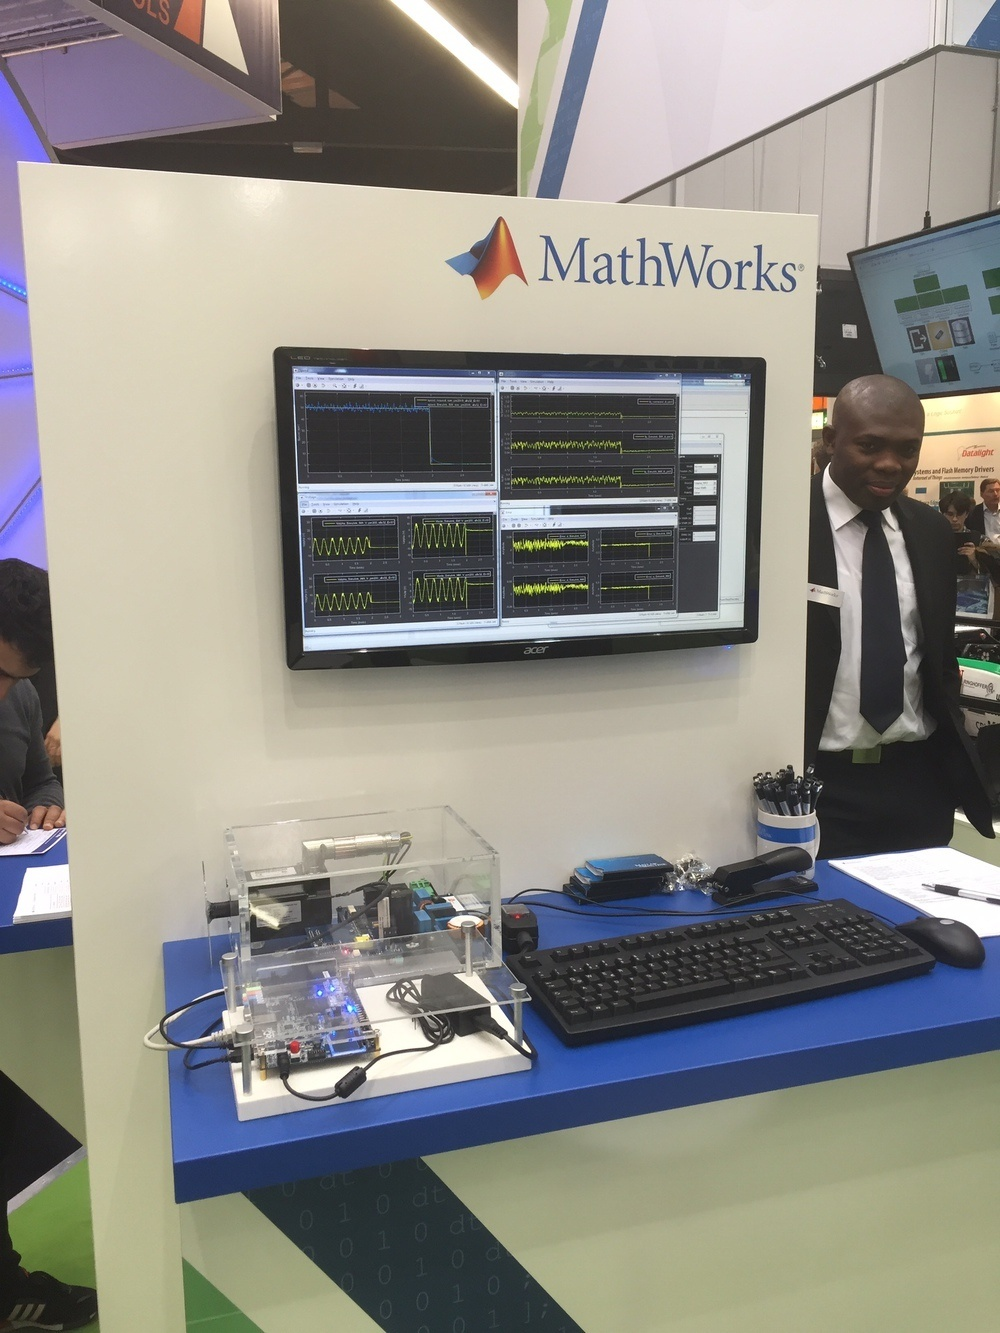 Embedded World 2016: куда катится embedded-мир? - 7